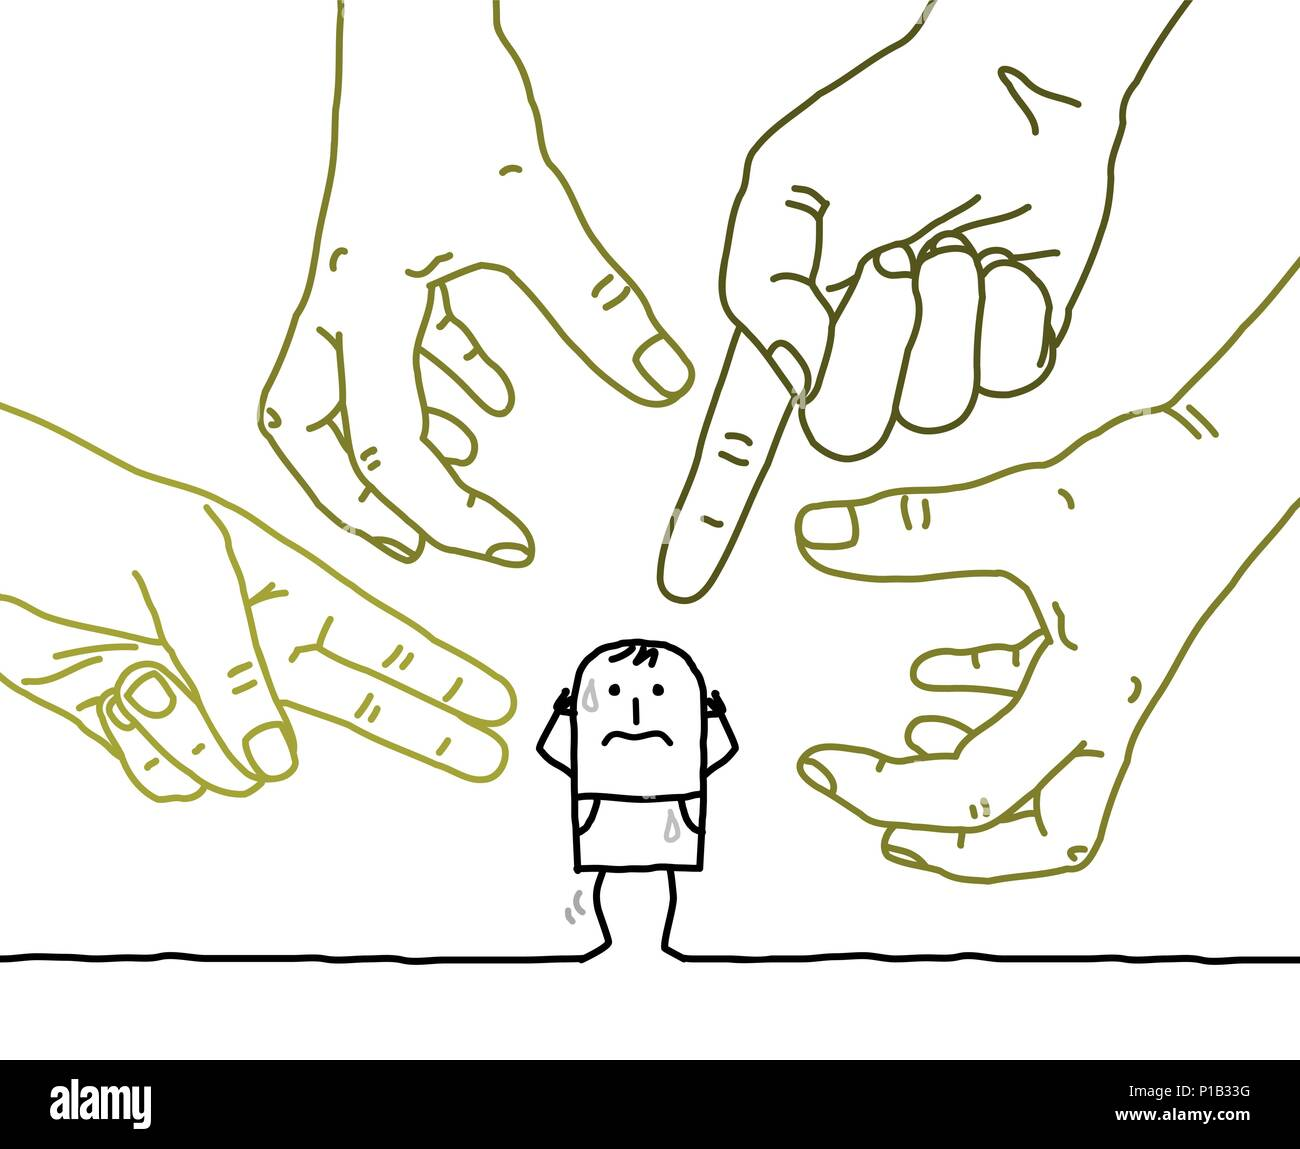 Big Hands with Cartoon Character - Aggression and Paranoia - Stock Image